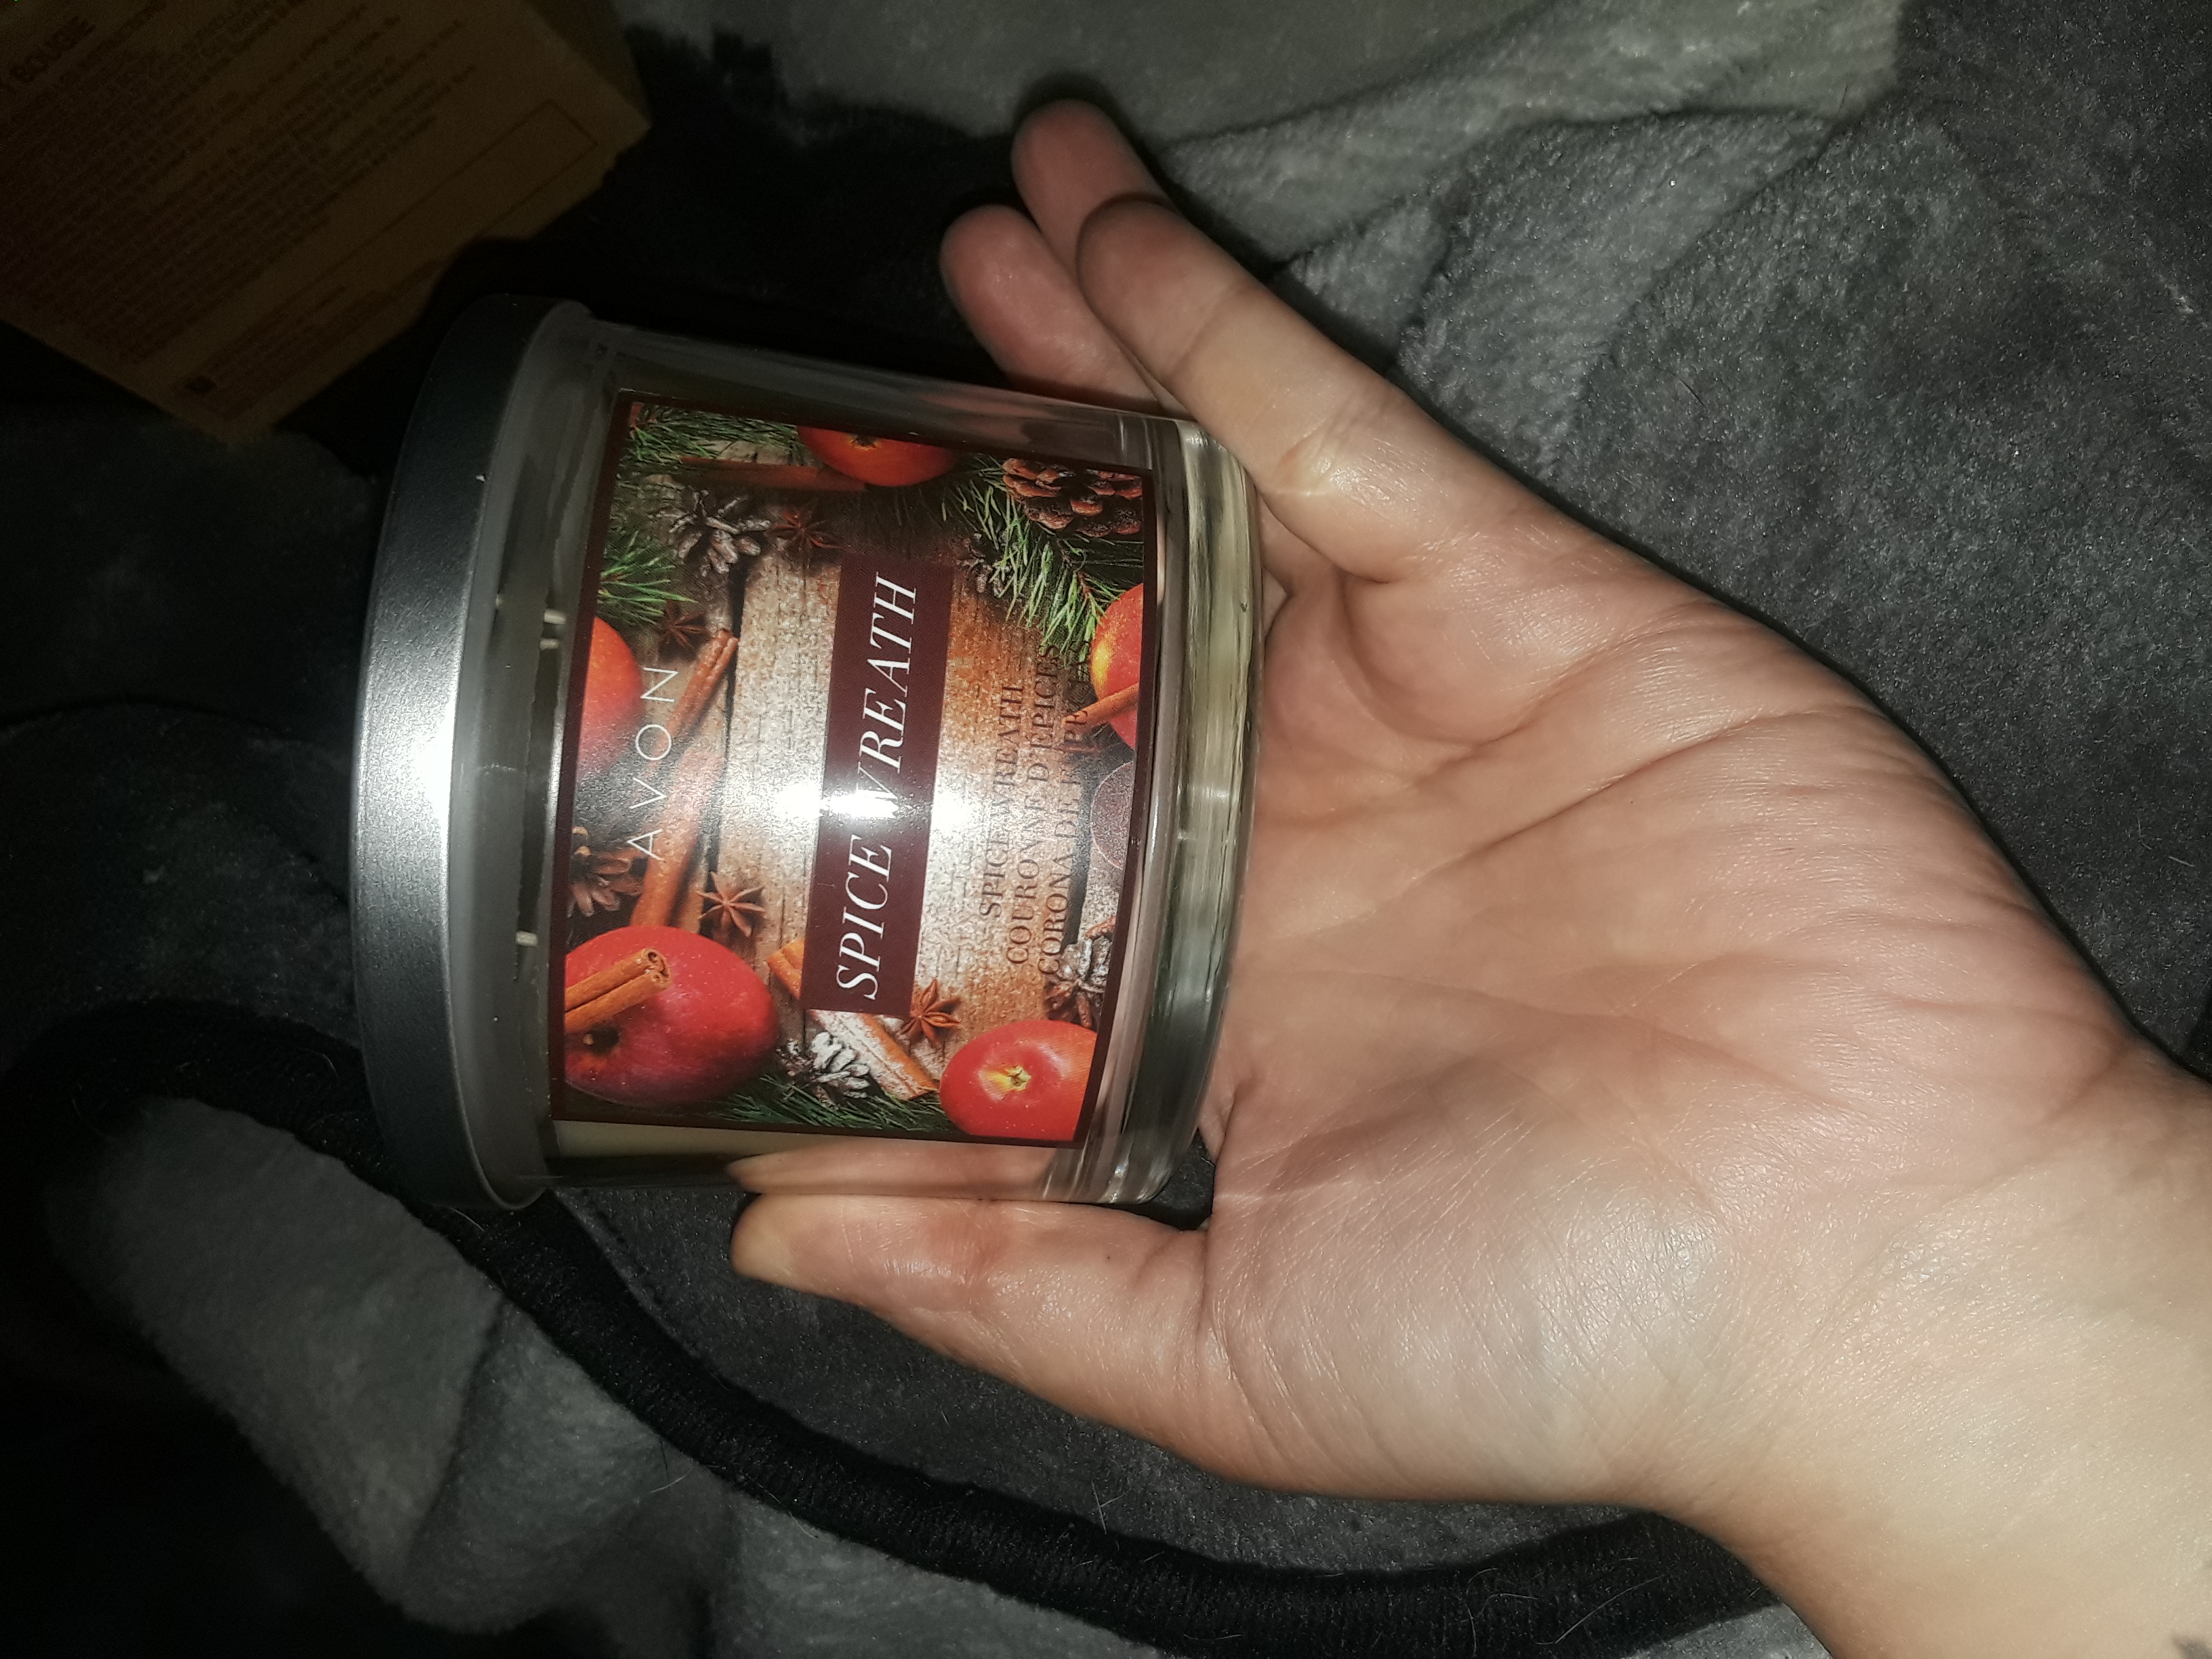 Avon Spiced wreath 3 wick candle